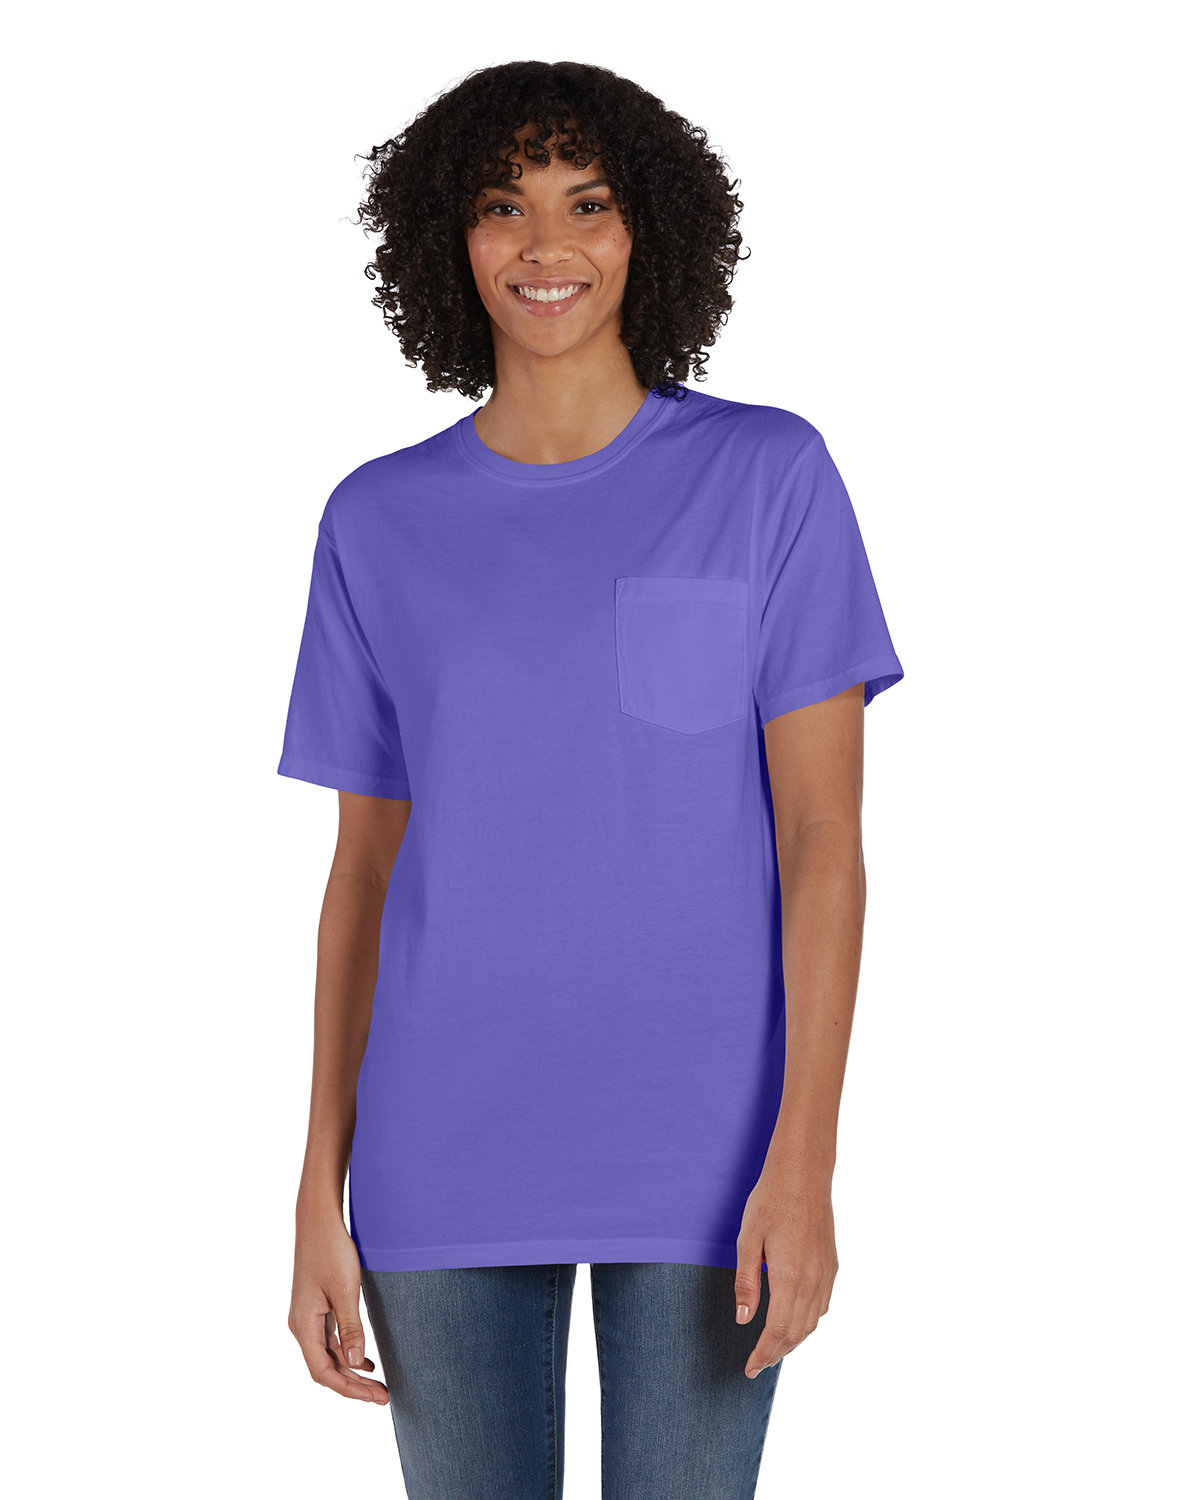 ComfortWash by Hanes Unisex Garment-Dyed T-Shirt with Pocket LAVENDER